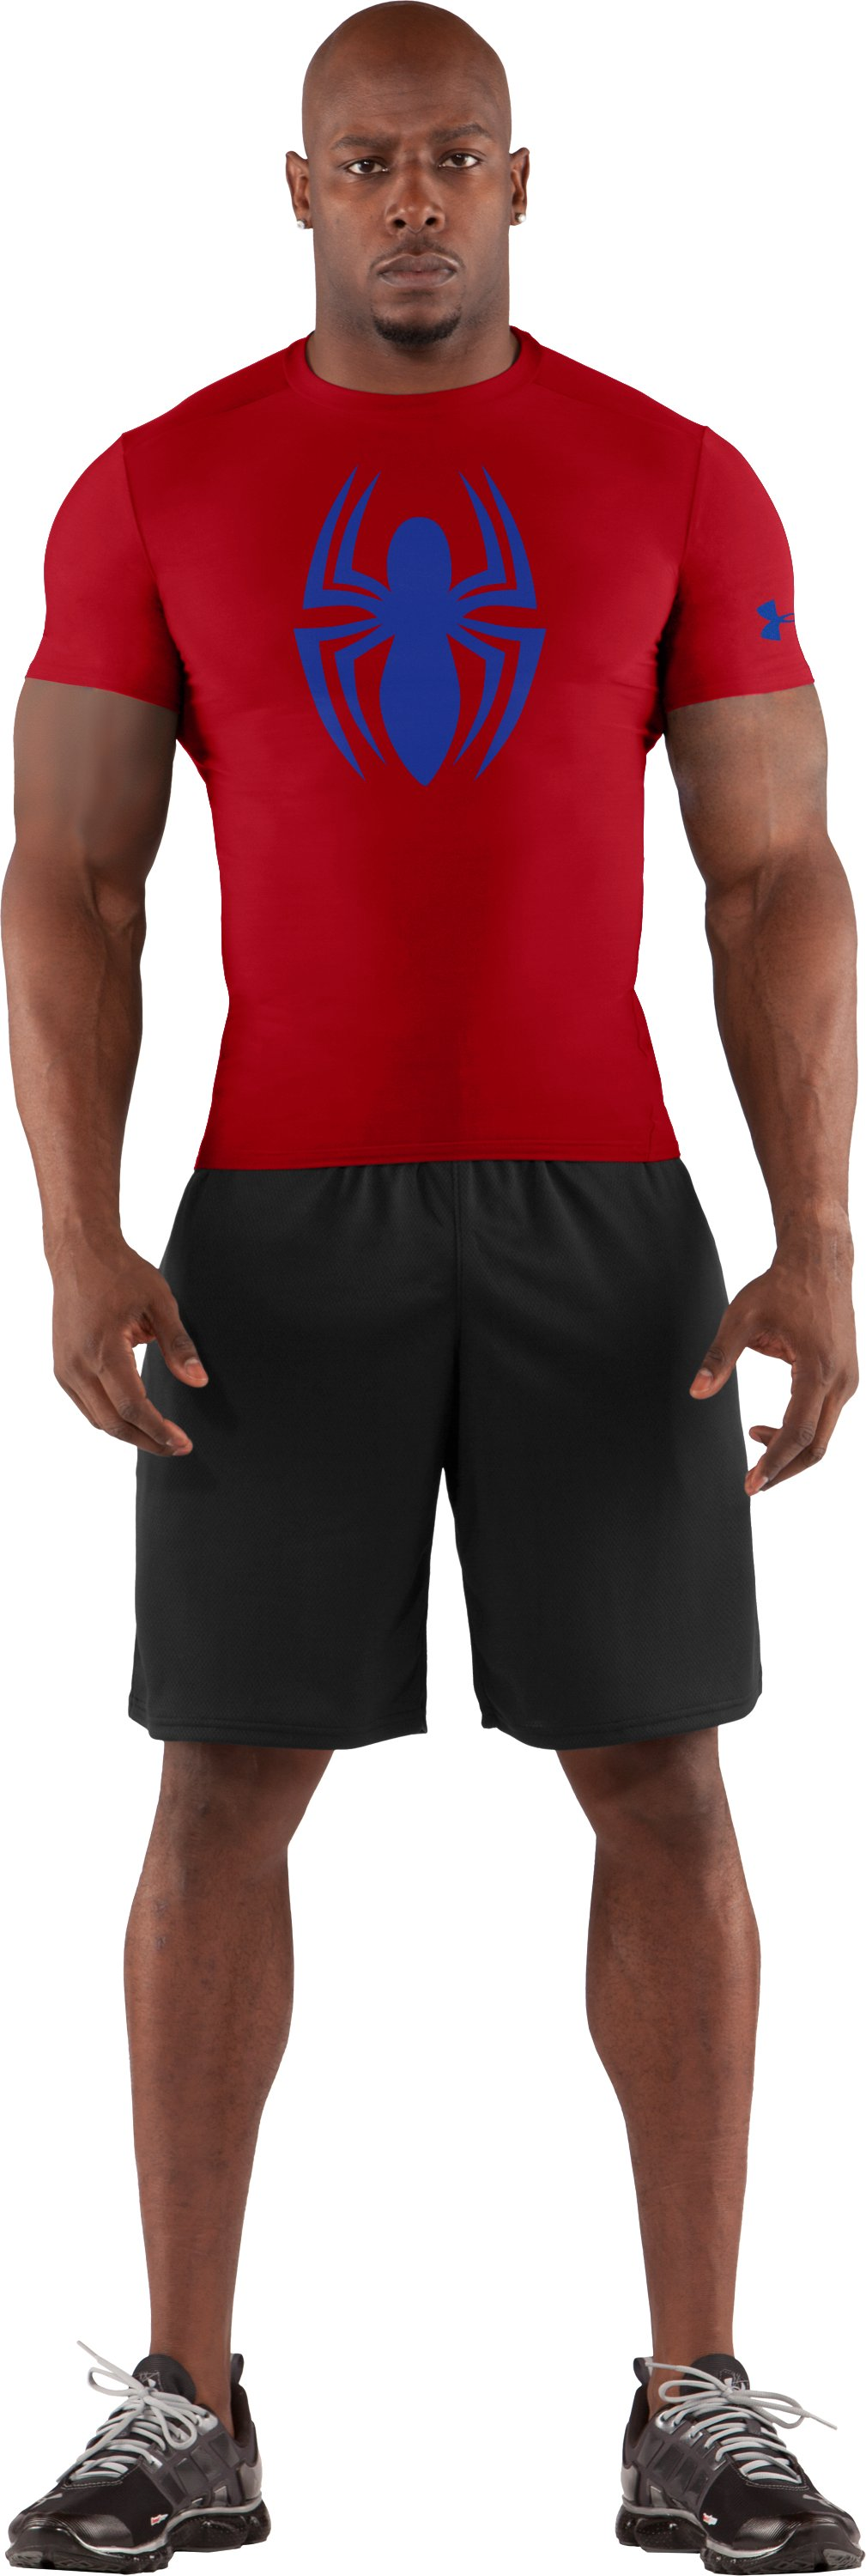 Men's Under Armour® Alter Ego Compression Shirt, Red